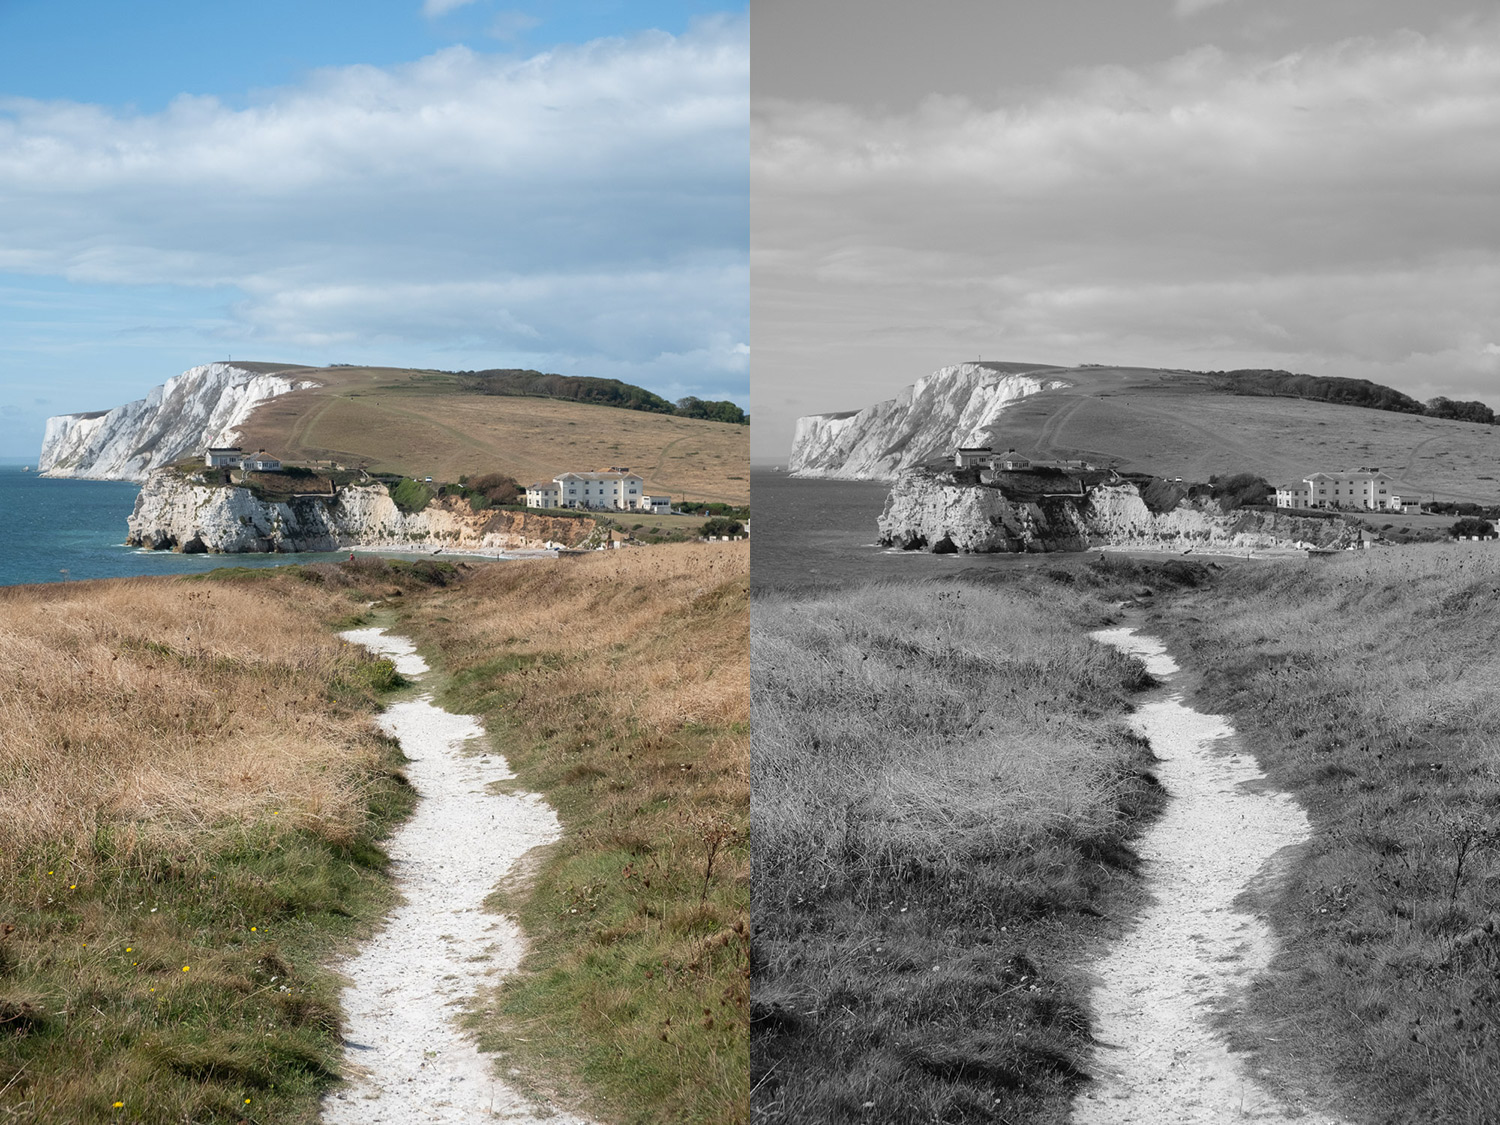 Image: Left: Isle of Wight RAW file. Right: Acros JPG with the green filter.